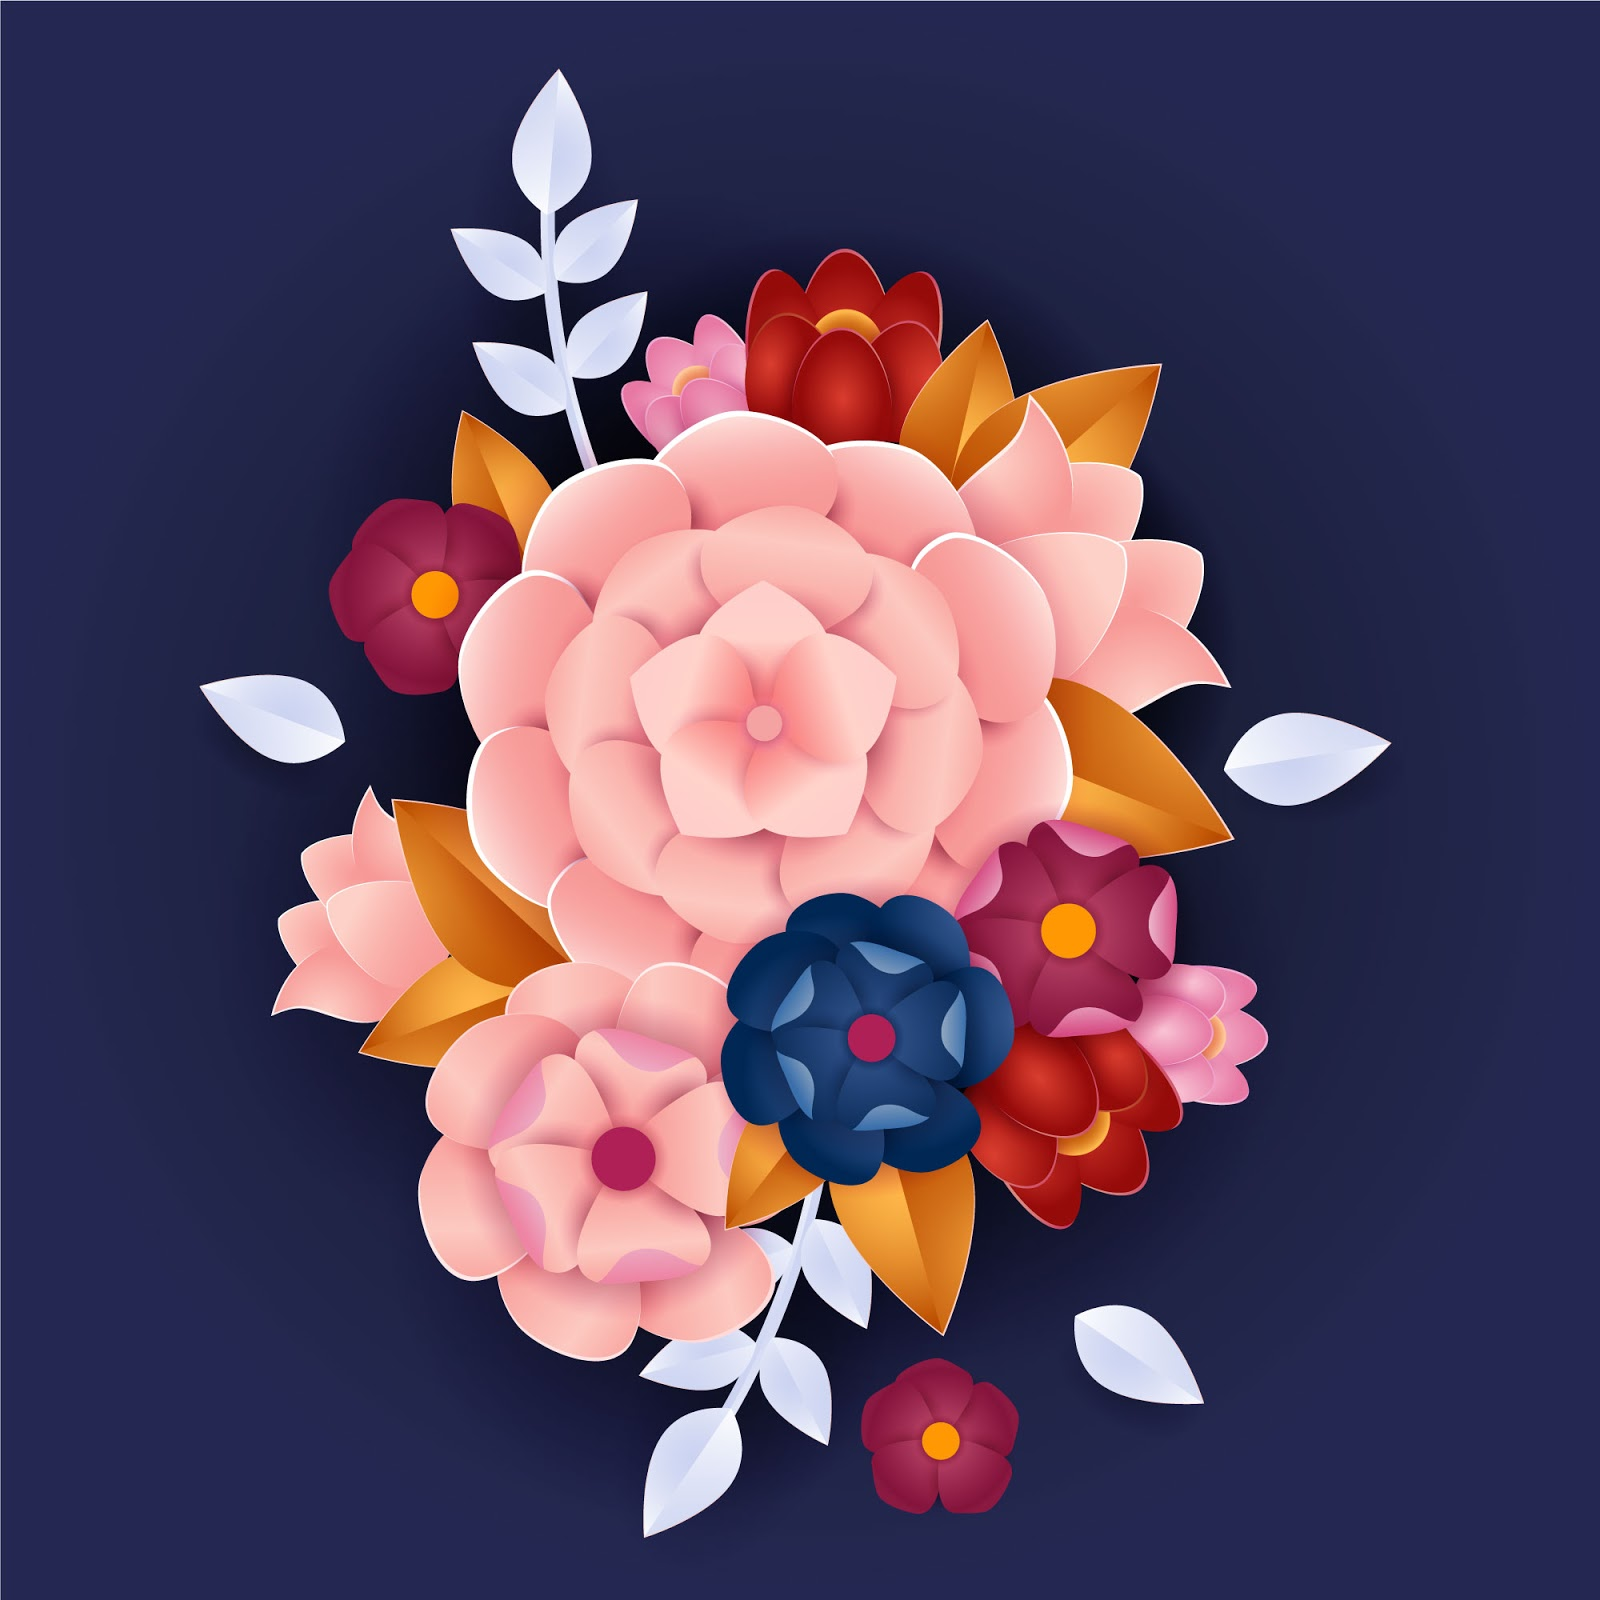 Gradient Paper Style Flowers Concept Free Download Vector CDR, AI, EPS and PNG Formats